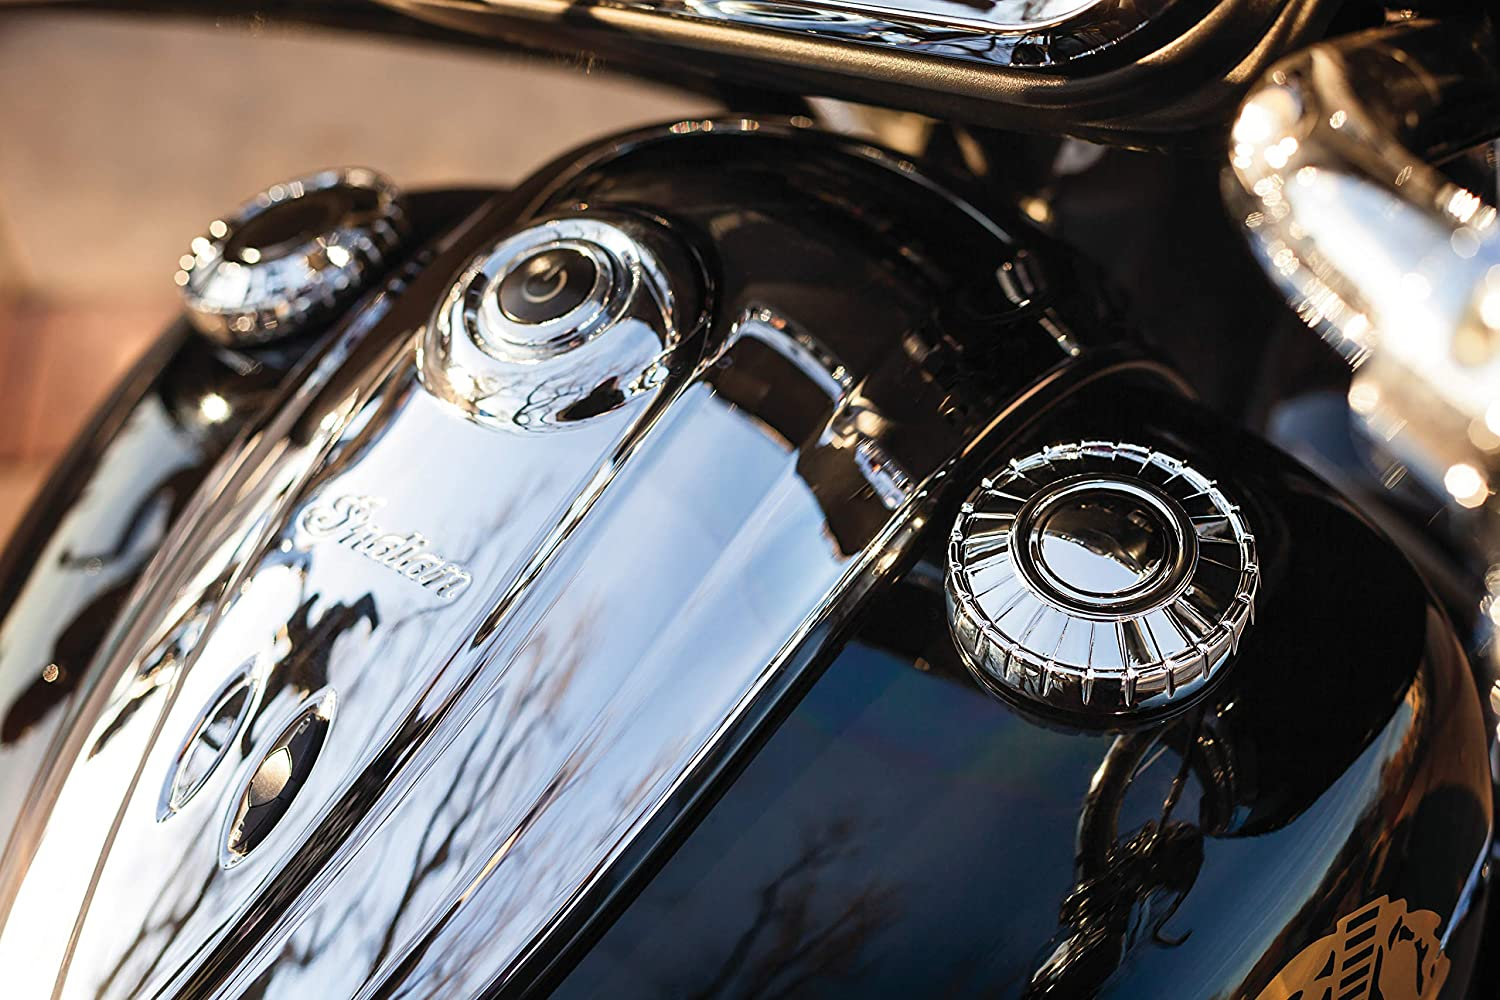 Kuryakyn 7387 Motorcycle Accent Accessory Chrome Aztec Fuel Caps for 2014-19 Indian Motorcycles 1 Pair